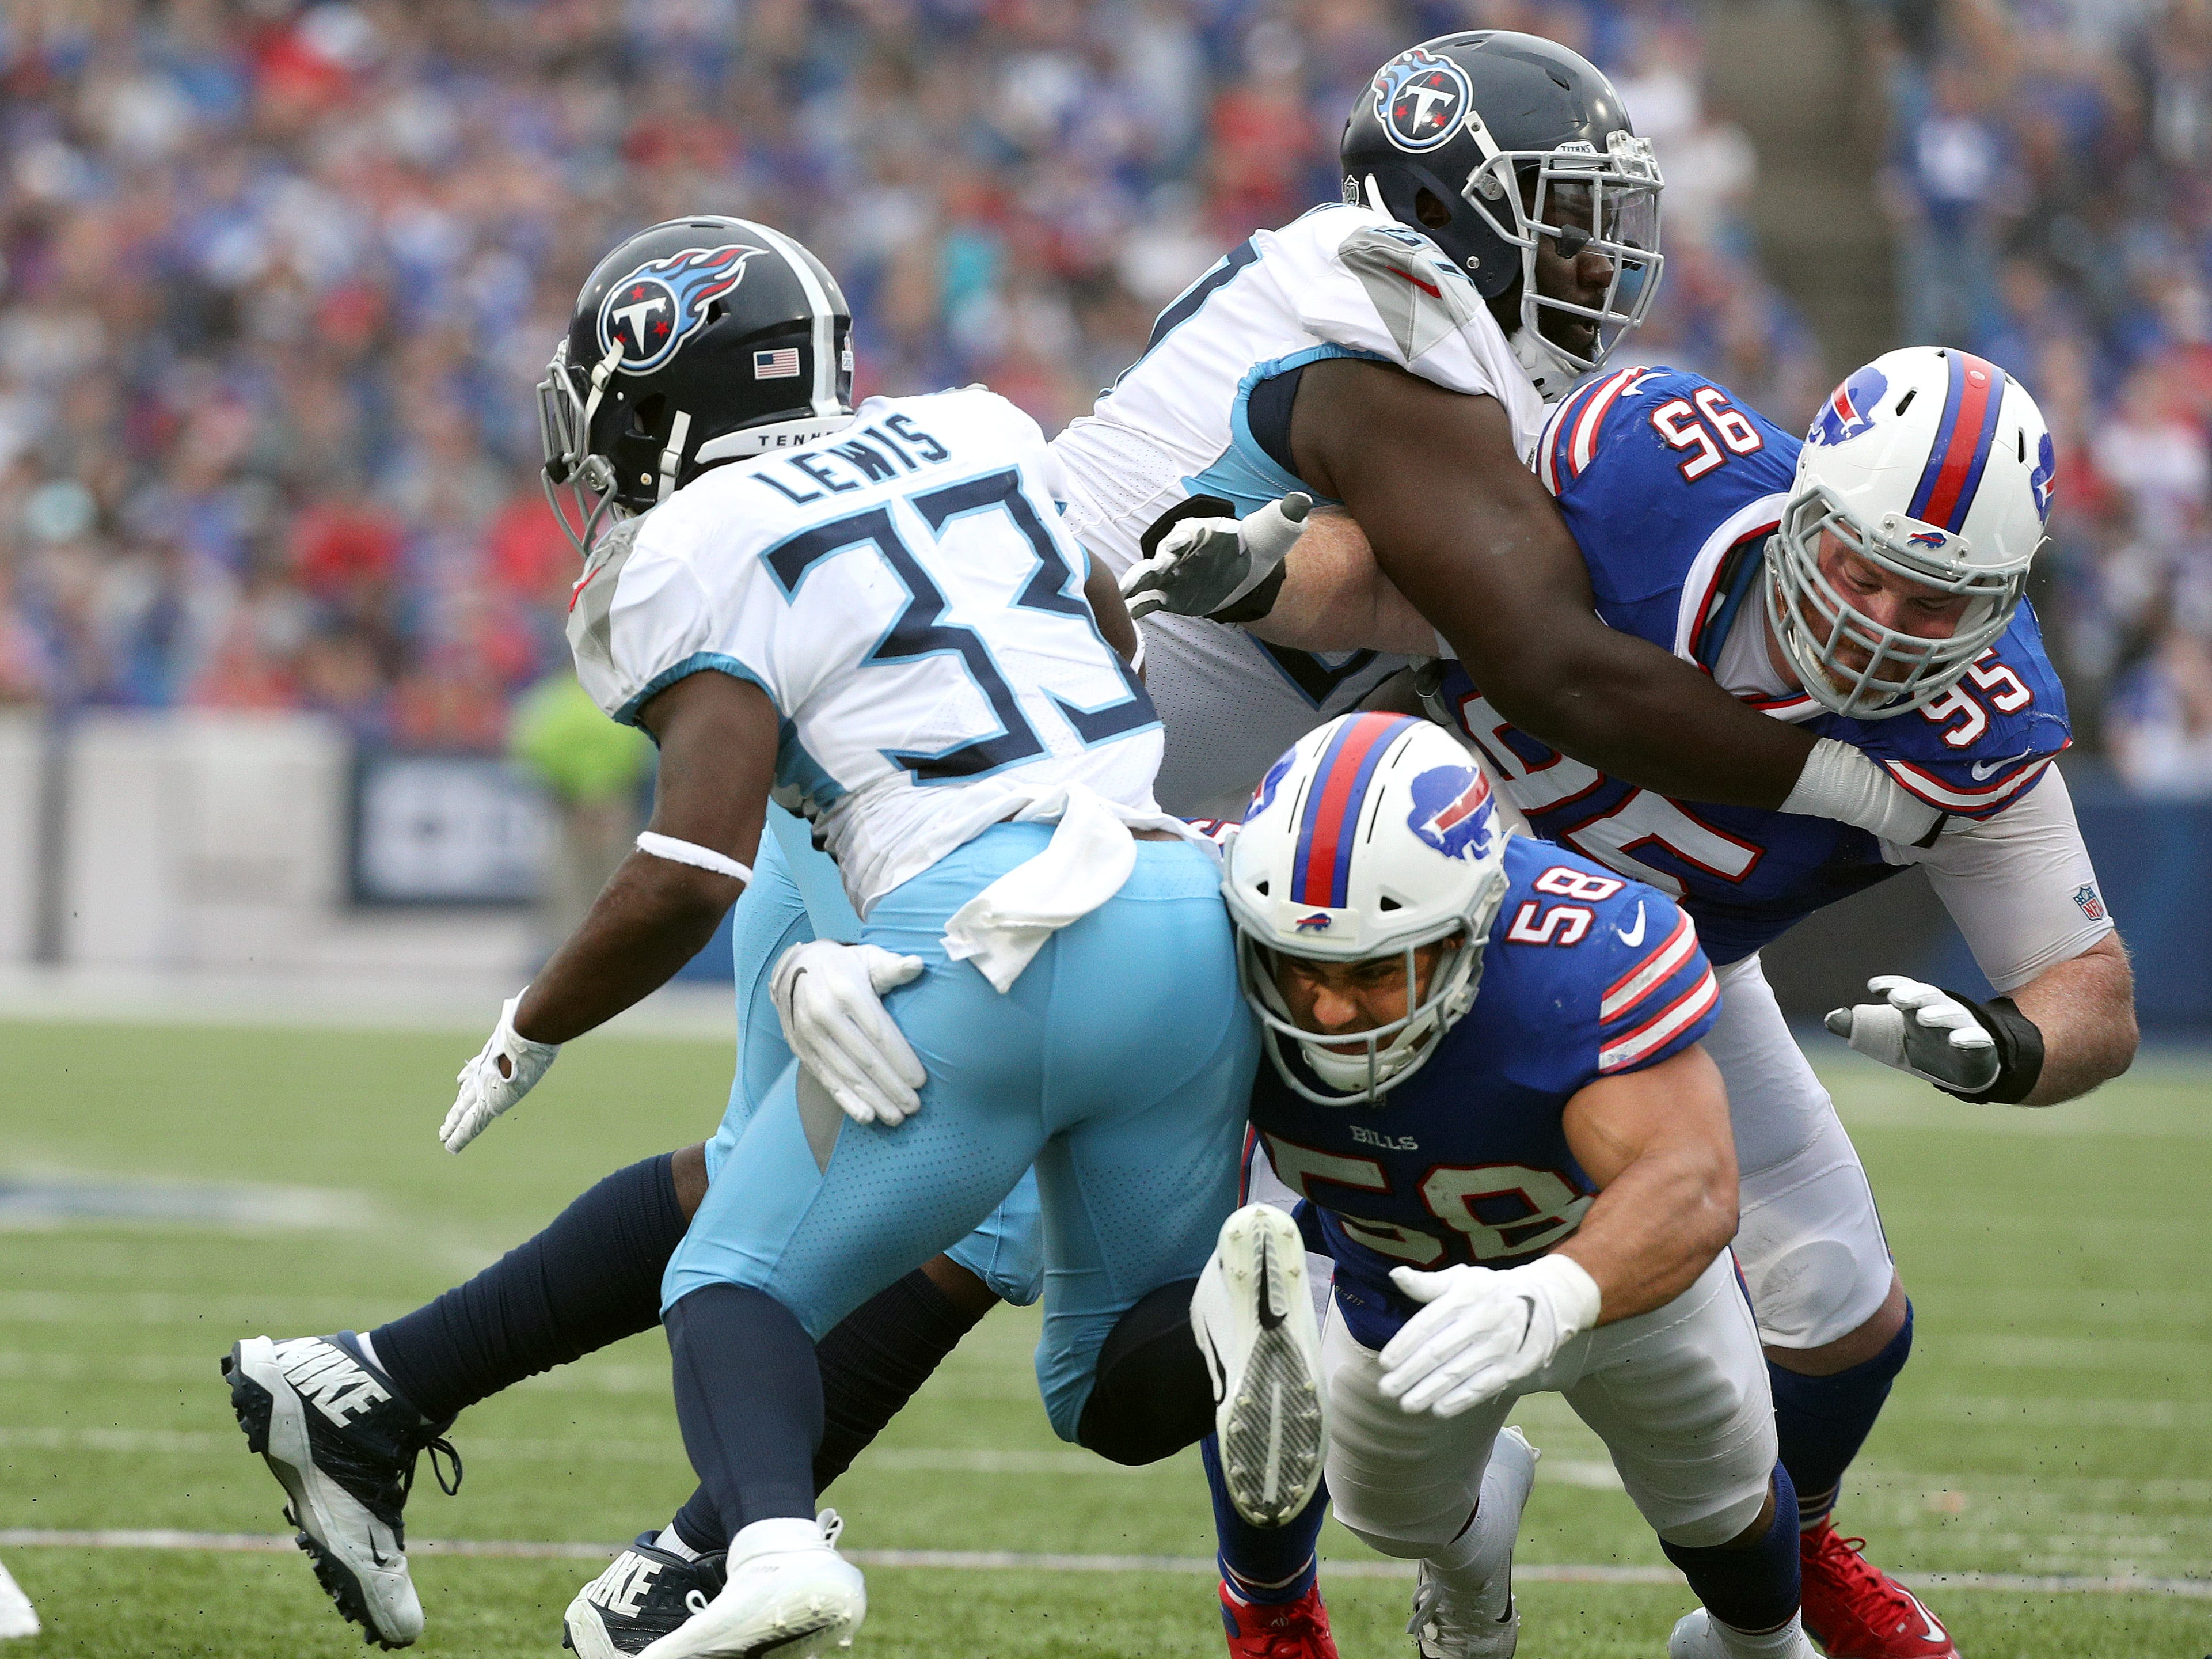 The Bills defense came up strong  against Tennessee as Matt Milano and Kyle Willams tackle Dion Lewis.